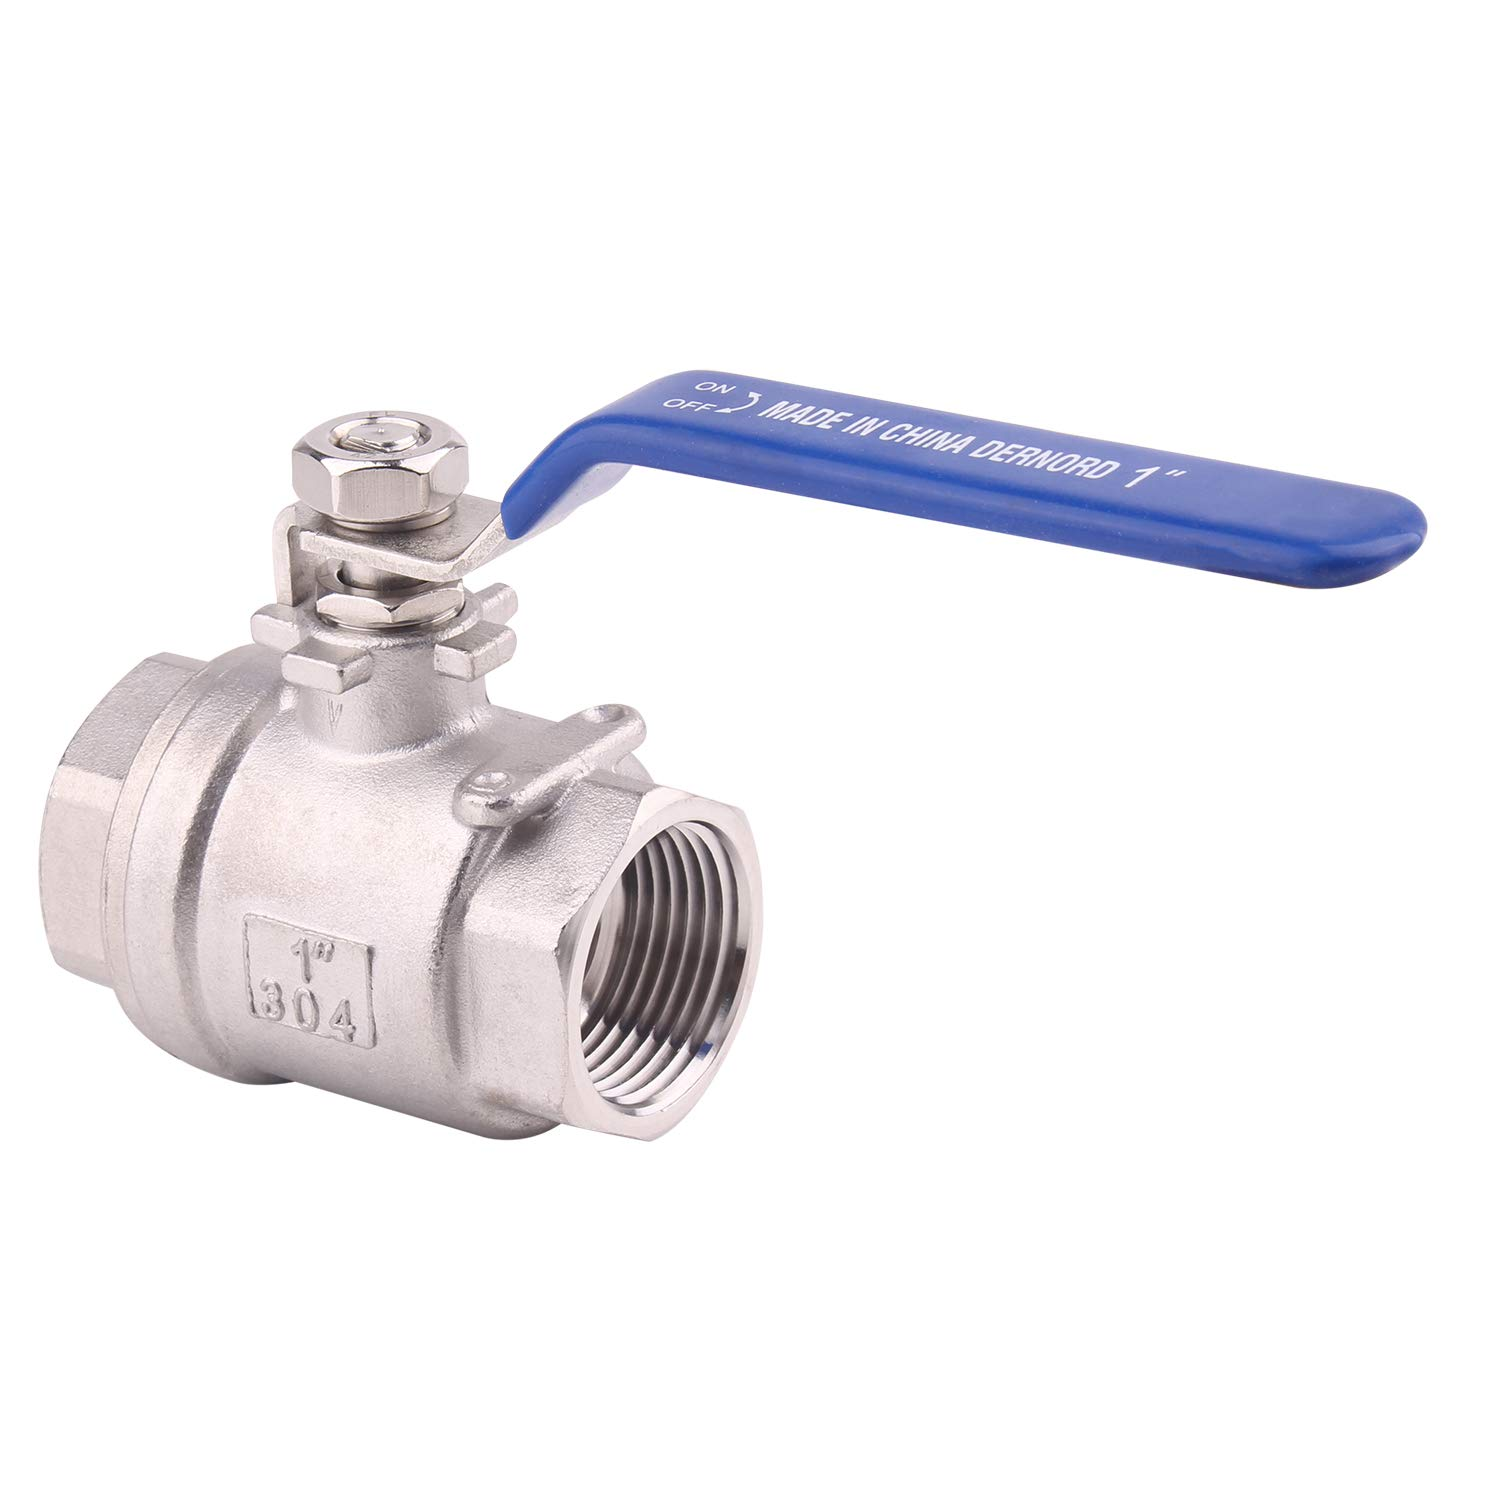 DERNORD Full Port Ball Valve Stainless Steel 304 Heavy Duty for Water, Oil, and Gas with Blue Locking Handles (1